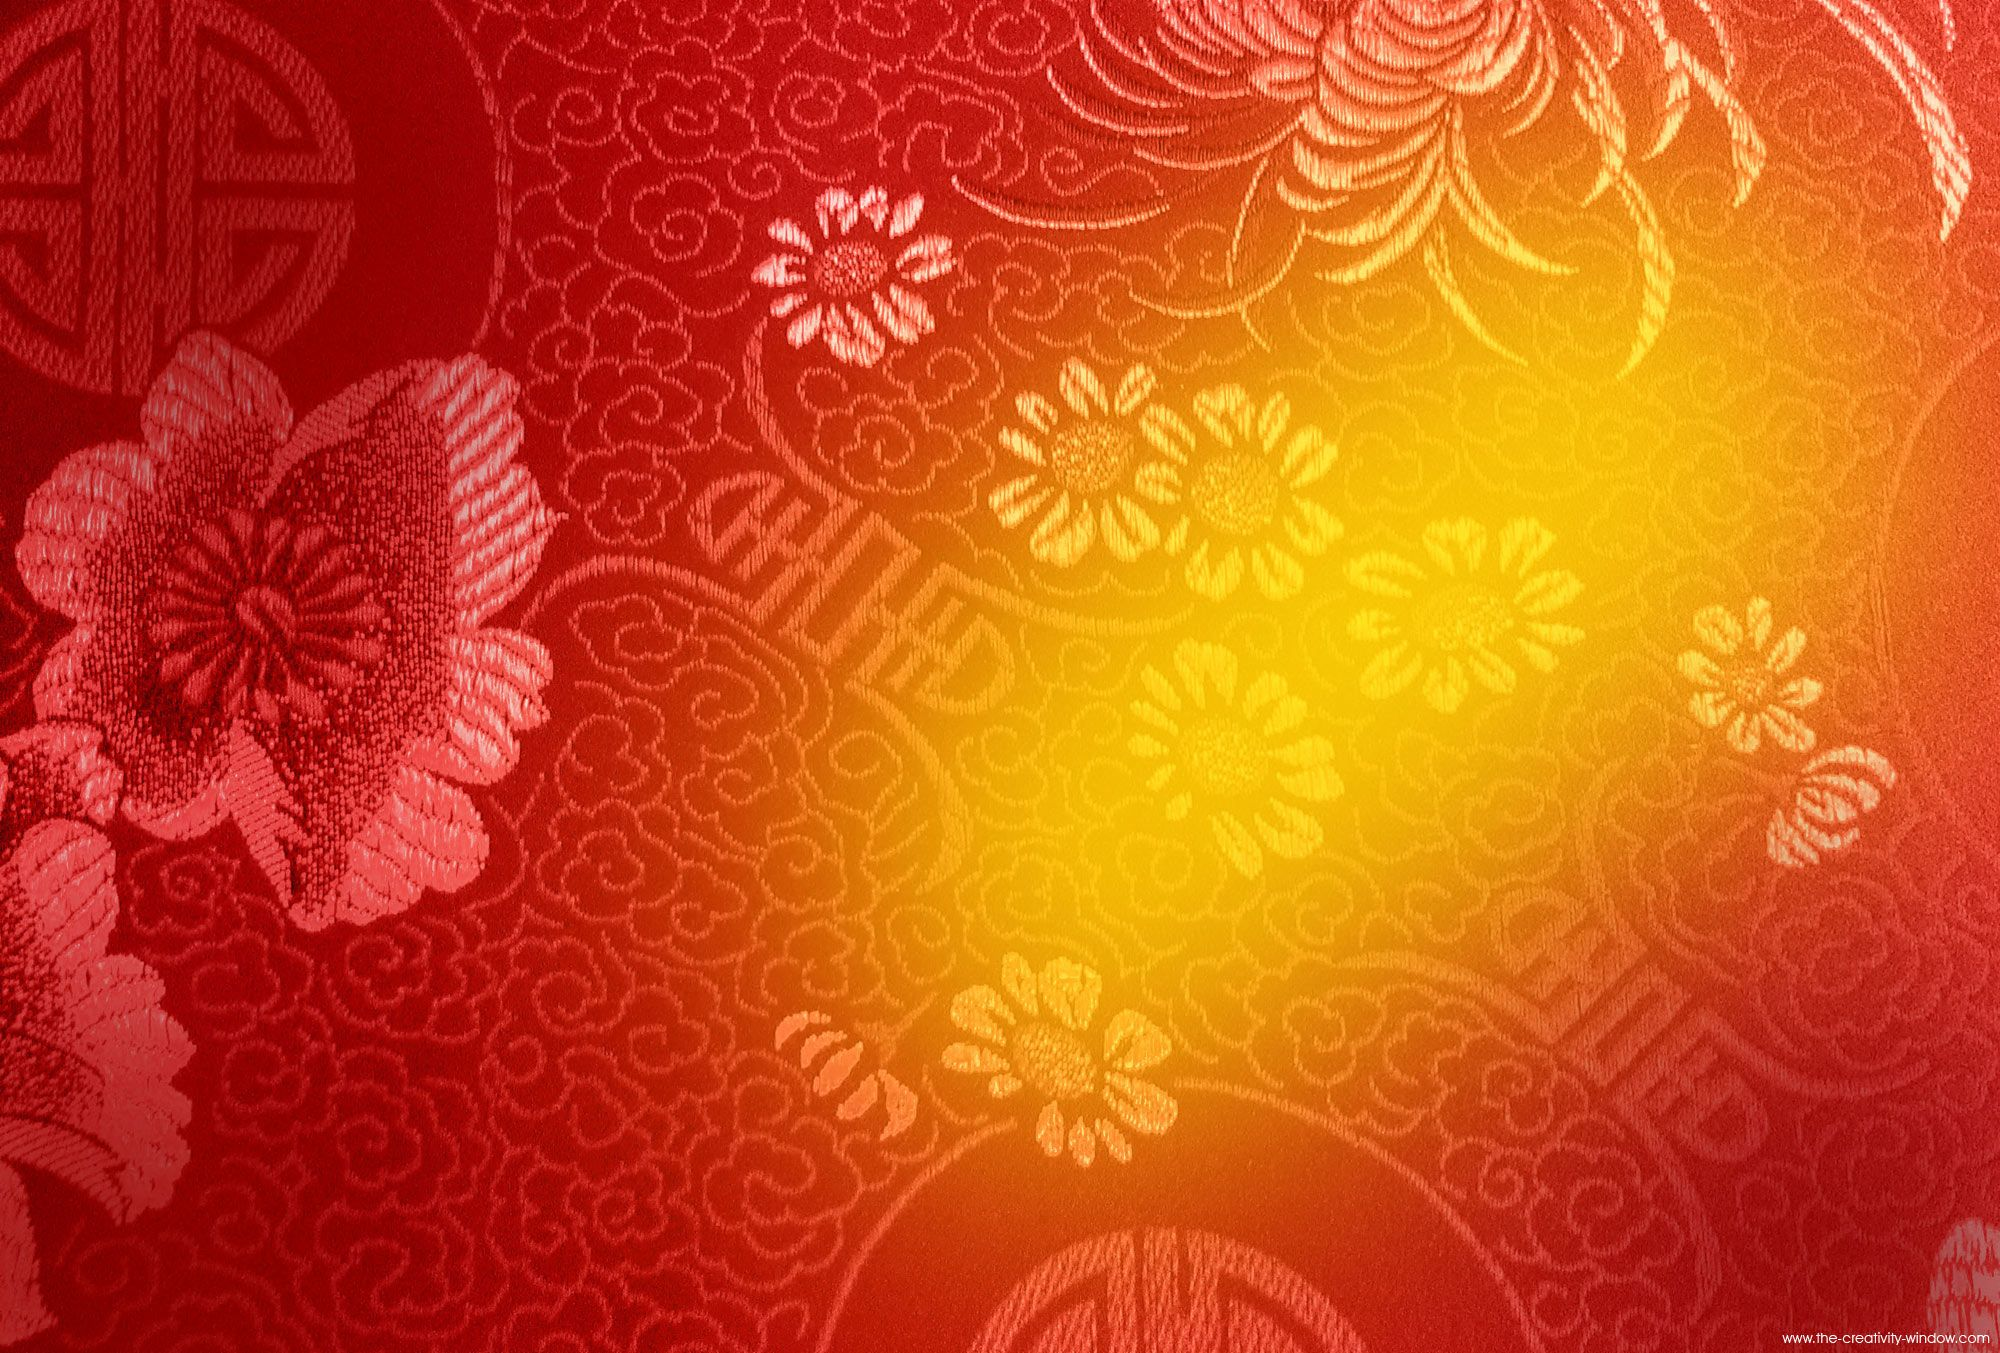 Chinese New Year Background Images 2017